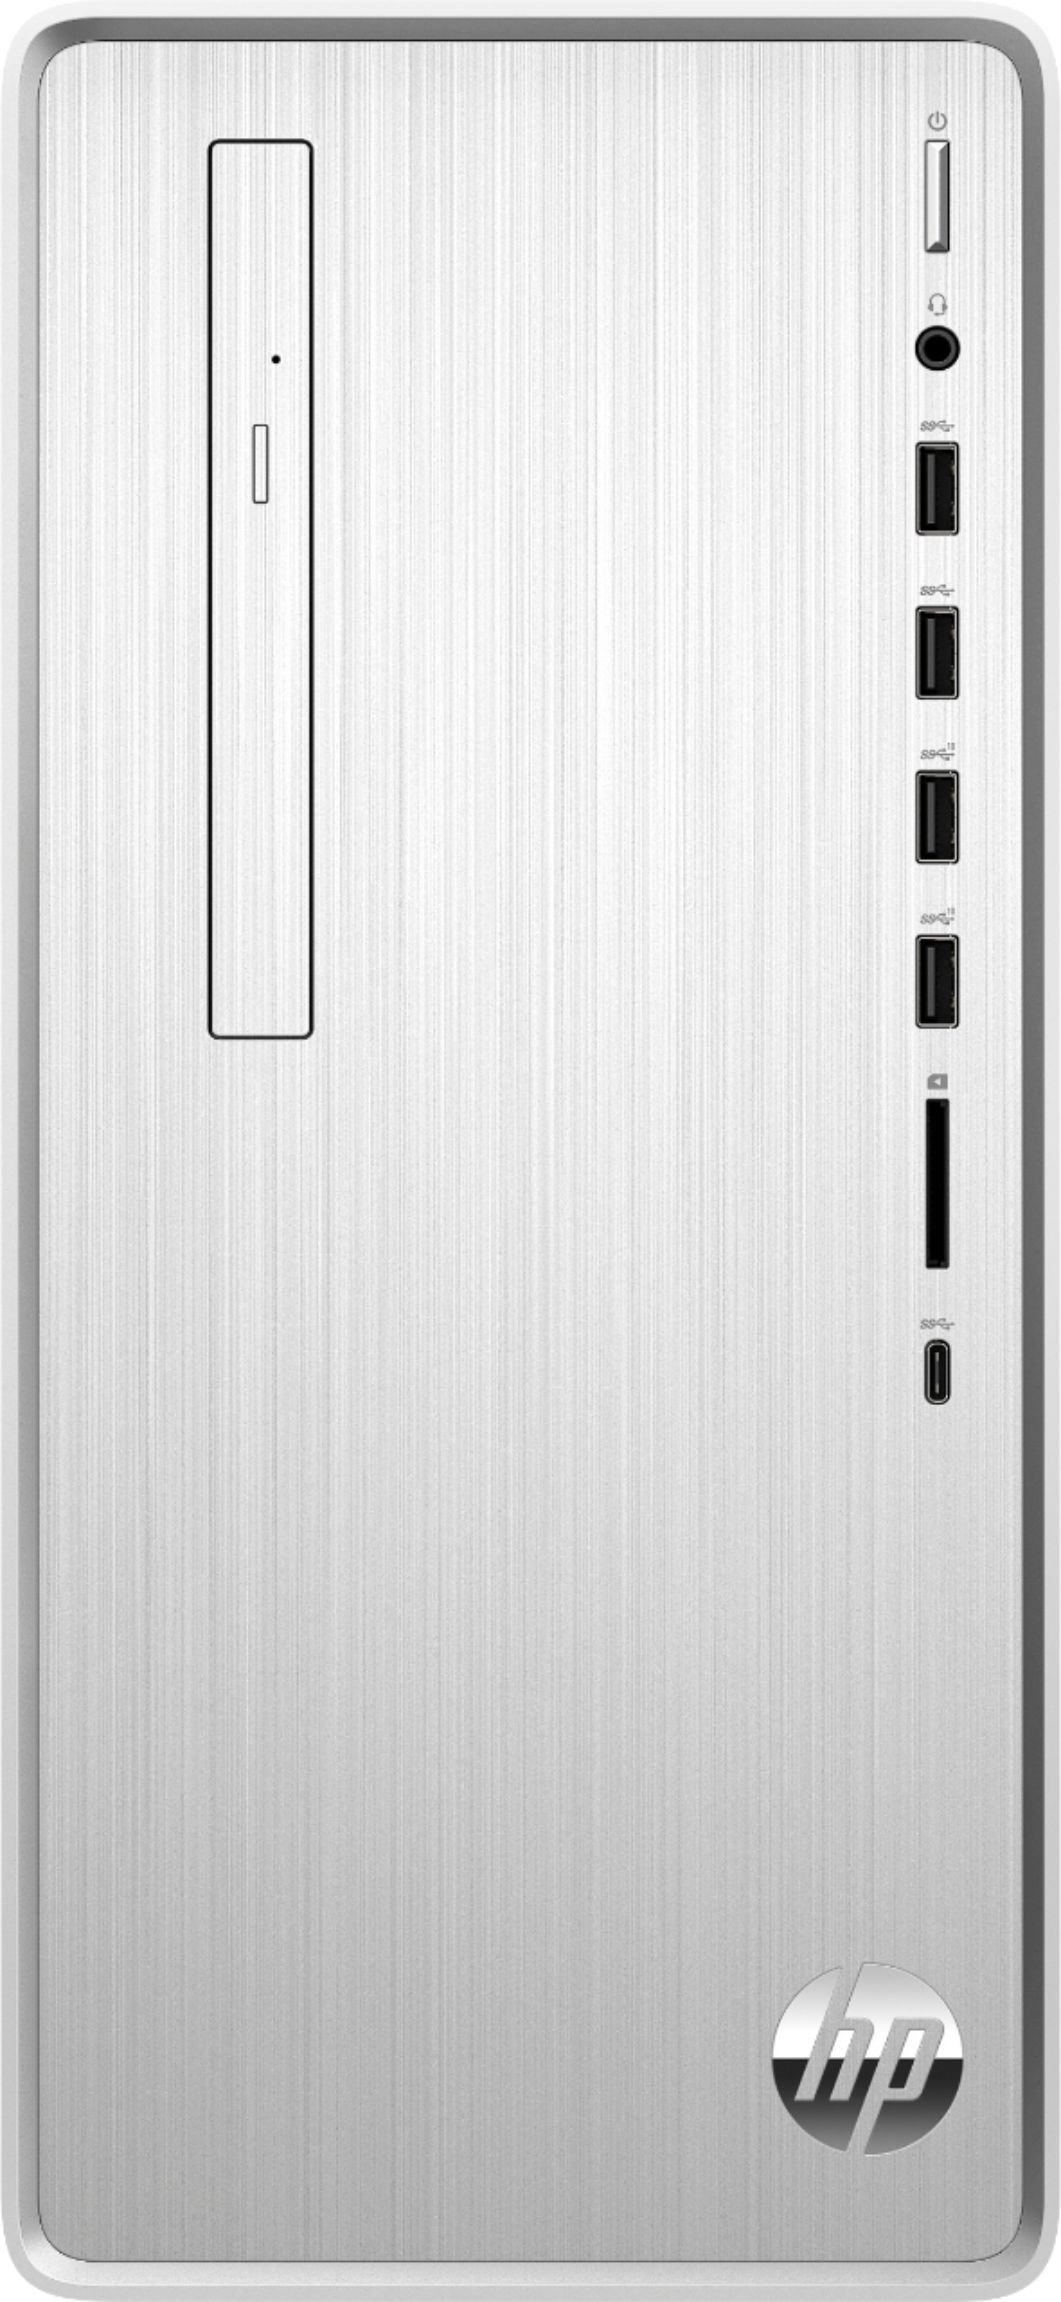 Alt View Zoom 6. HP - Pavilion Desktop - Intel Core i3 - 8GB Memory - 256GB Solid State Drive - Natural Silver.